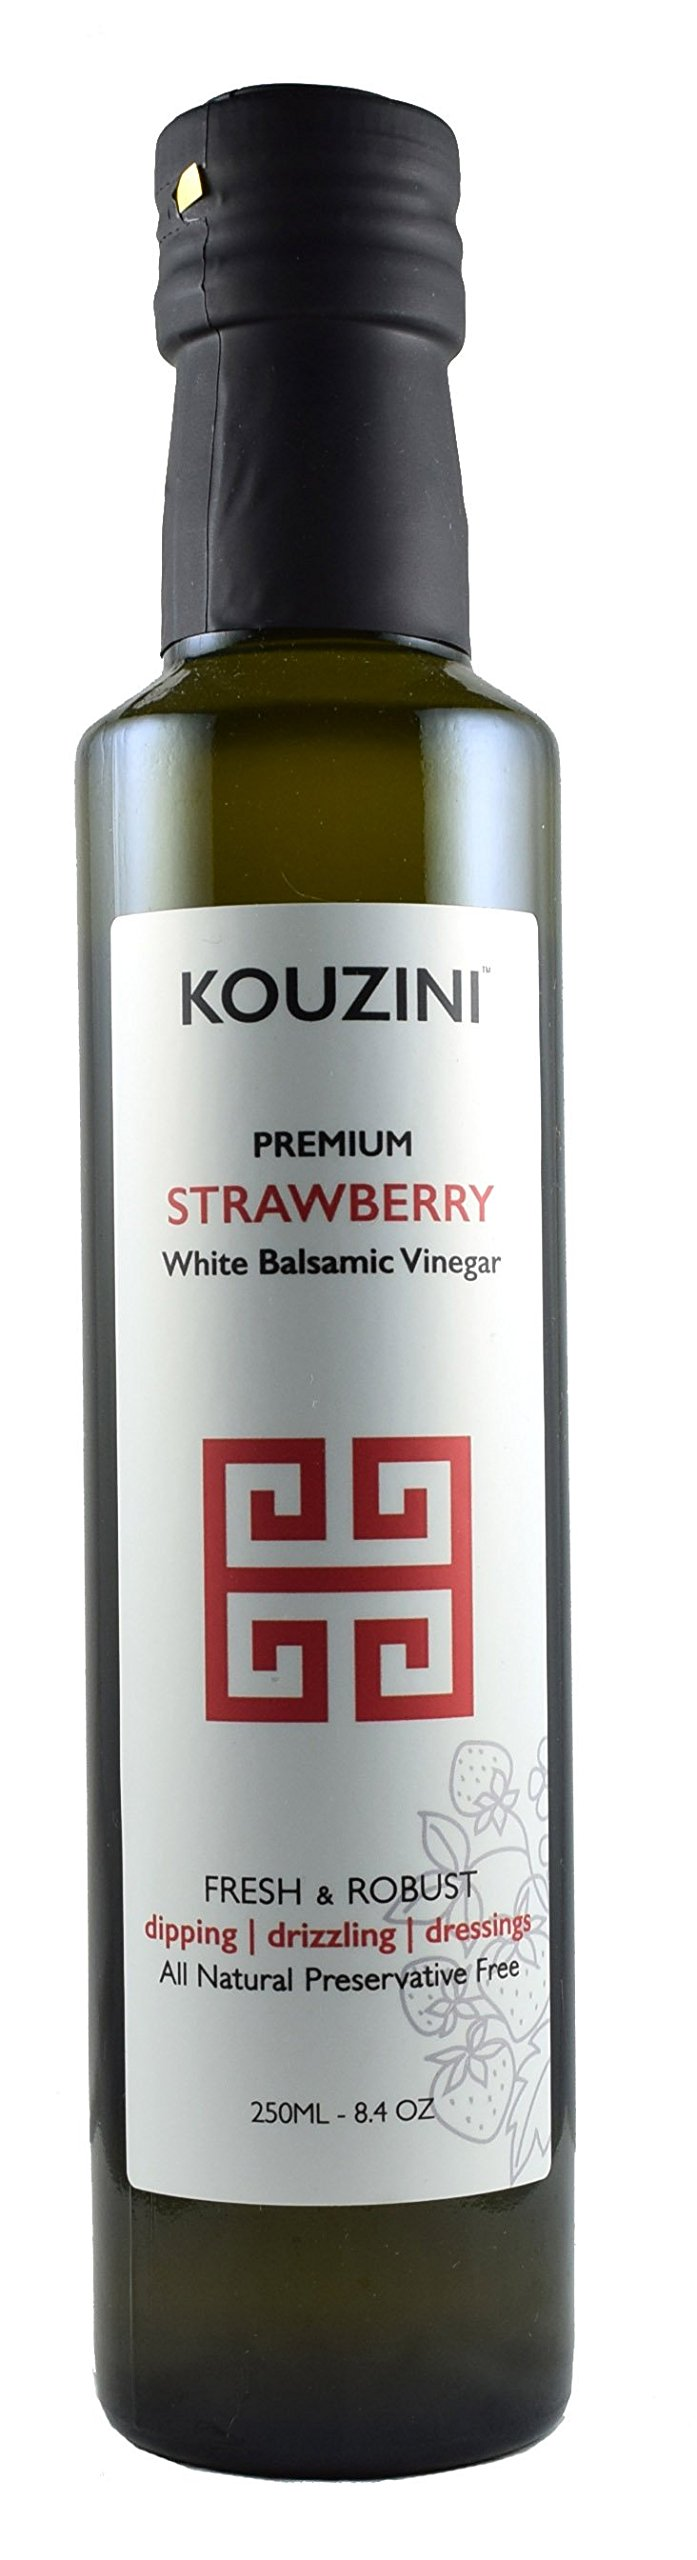 Kouzini White Strawberry Balsamic Vinegar (Limited time edition) 1 Strawberry Naturally thick, sweet and delicious. Great for drizzling, dippings, dressings, and marinades.